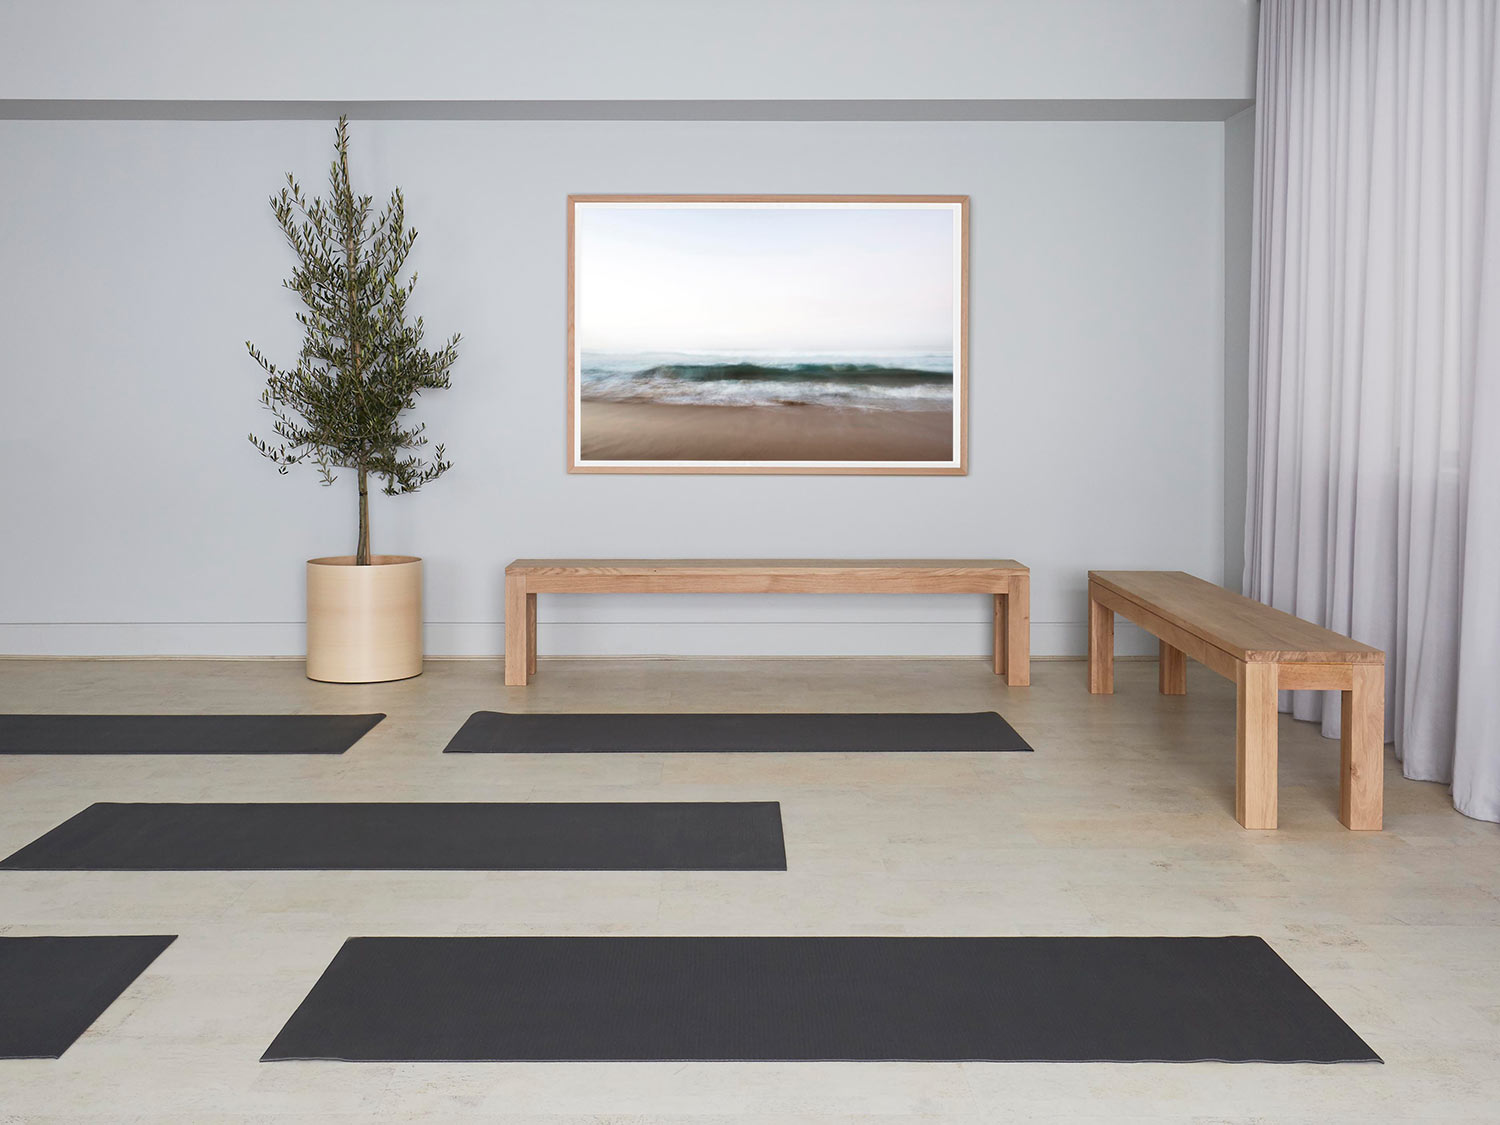 sparse room decorated with benches